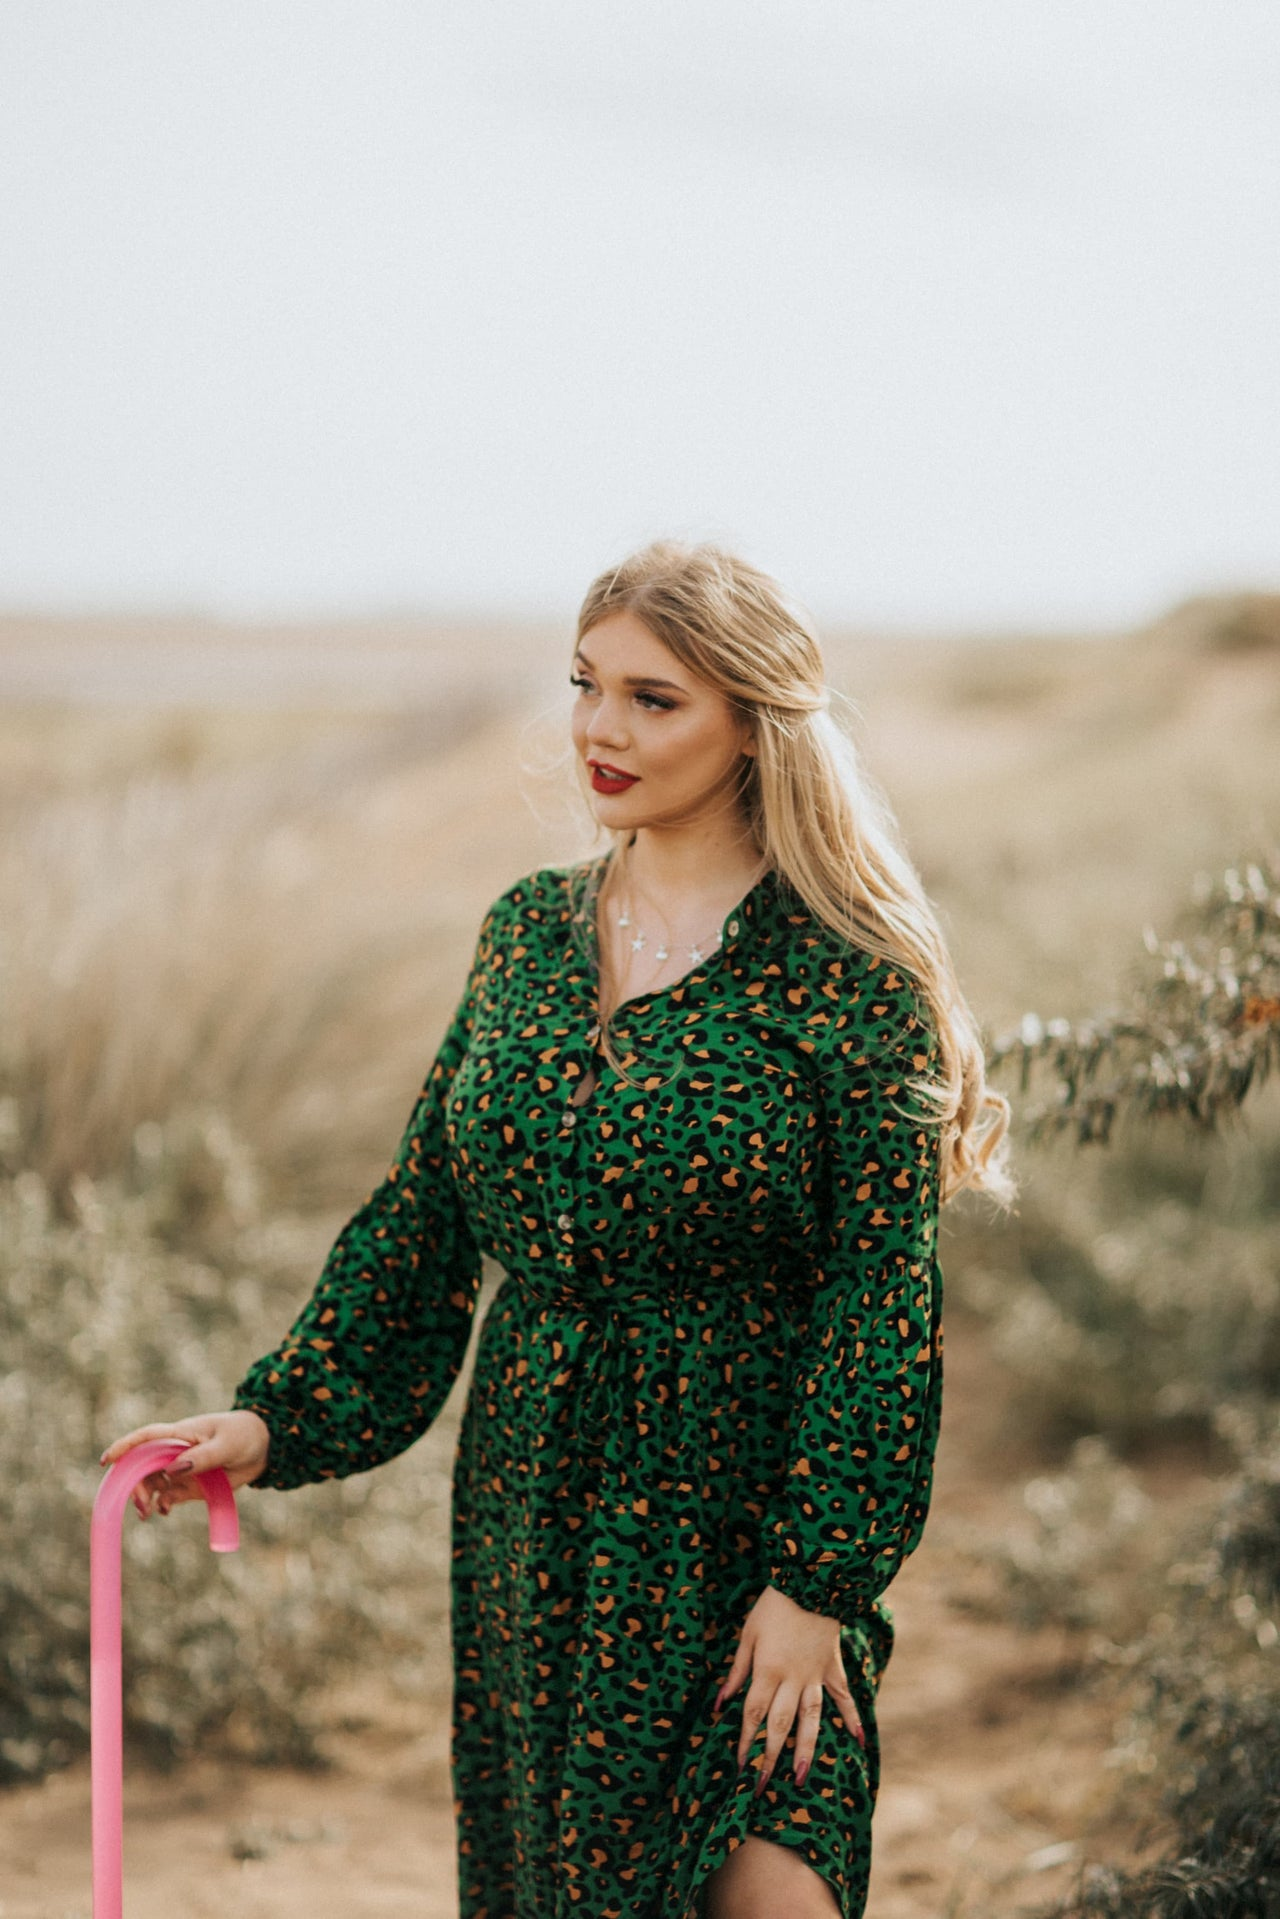 'Dottie' animal print dress in green